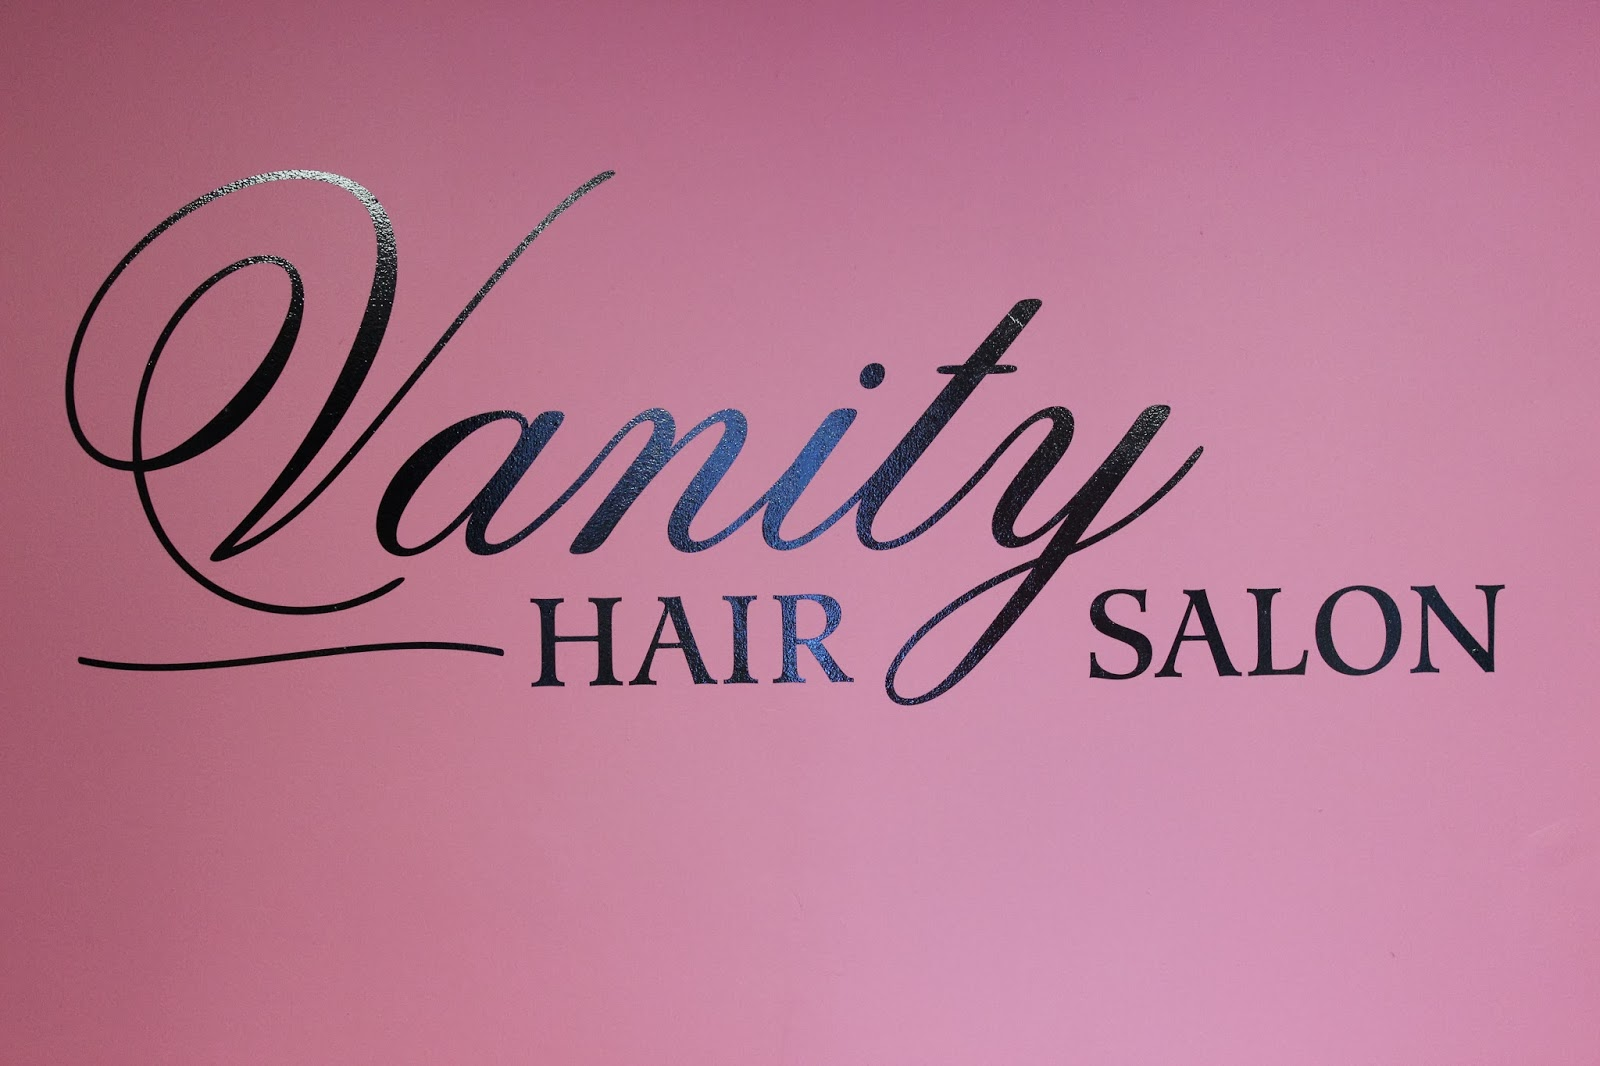 Vanity hair salon for K divine hair salon